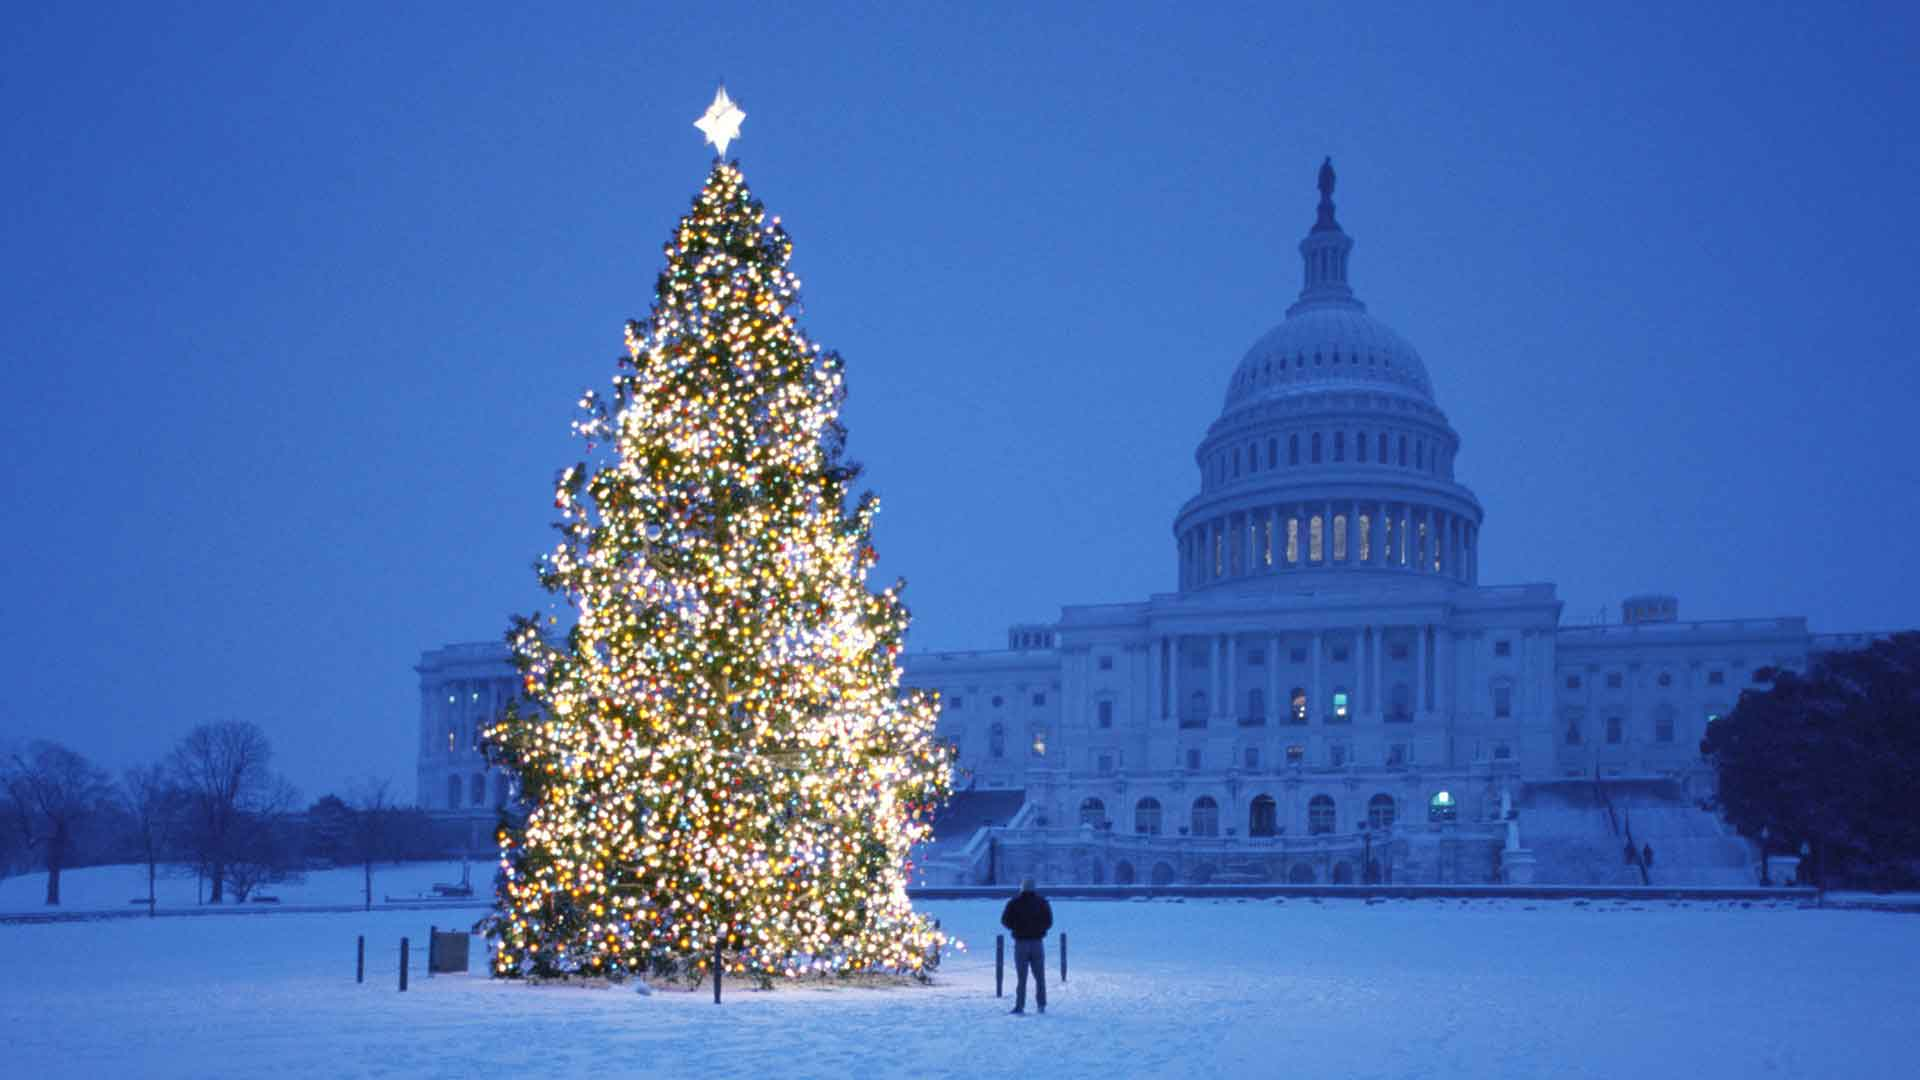 Happy holidays from Congress.